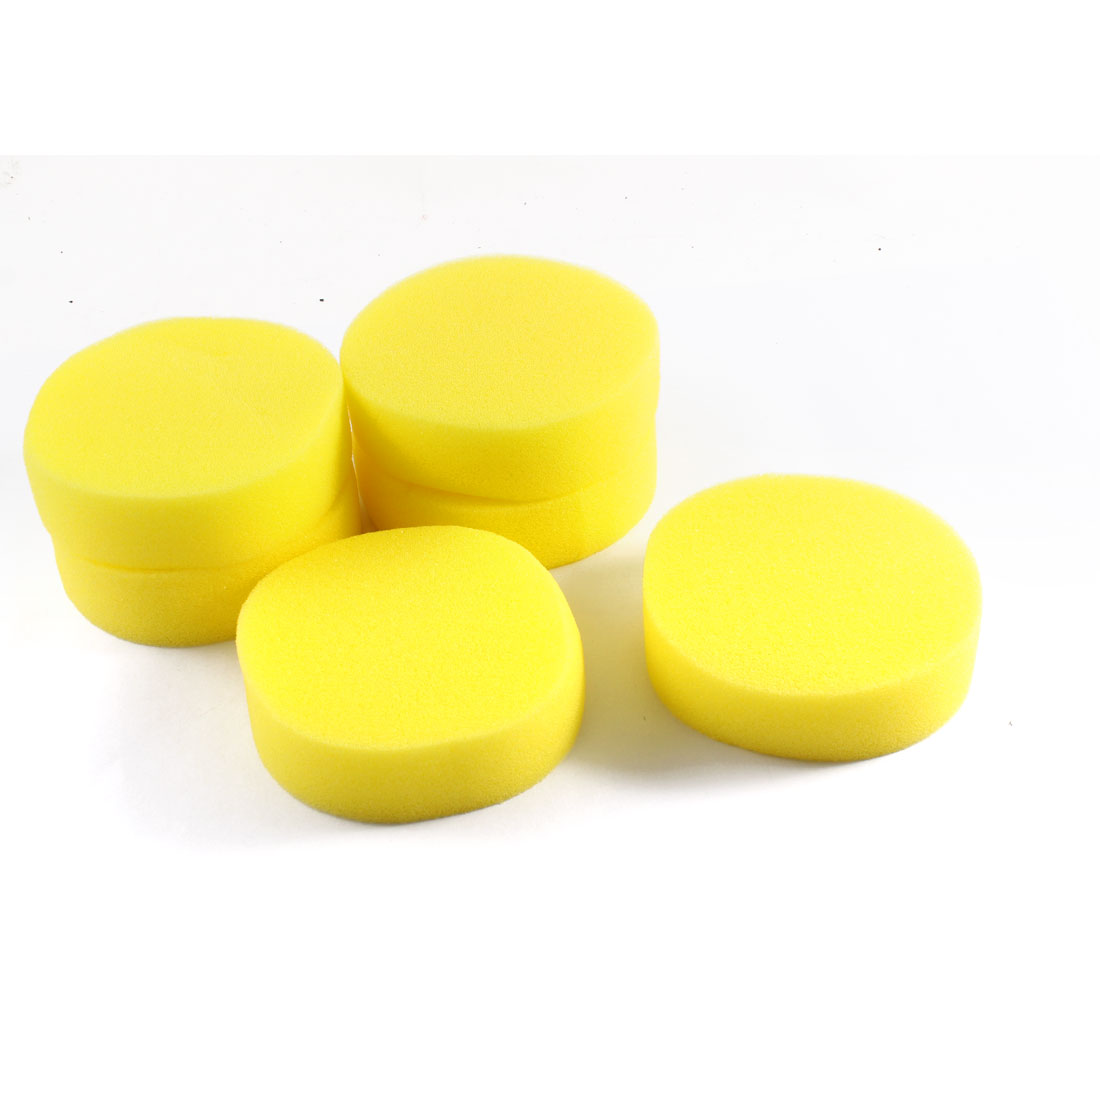 "6 Pcs 4"" Diameter Car Round Foam Cleaning Polishing Buffing Sponge Pad Yellow"